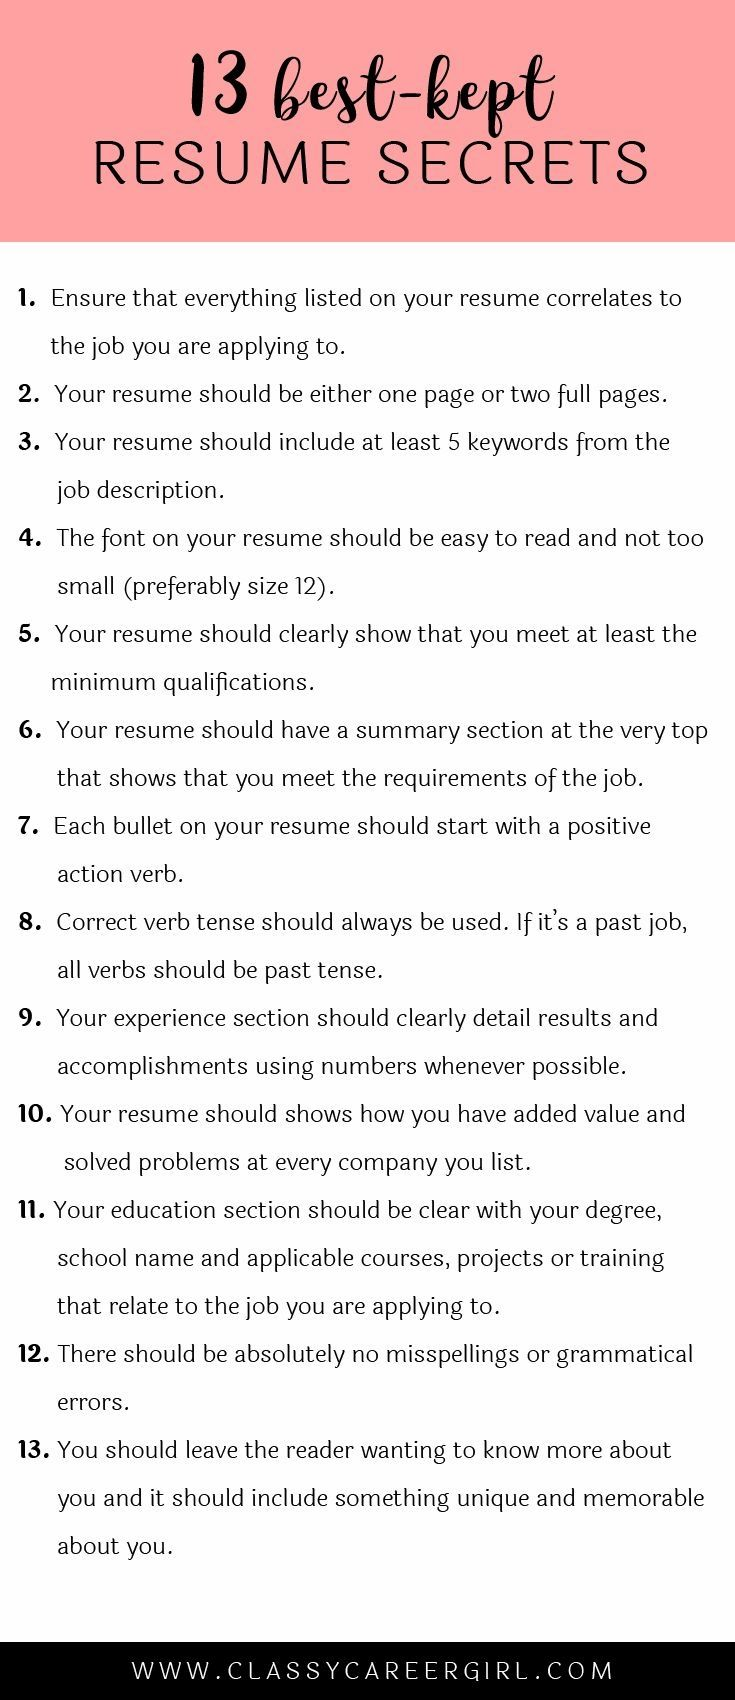 7 Tips for Designing the Perfect Resume Job resume, Job